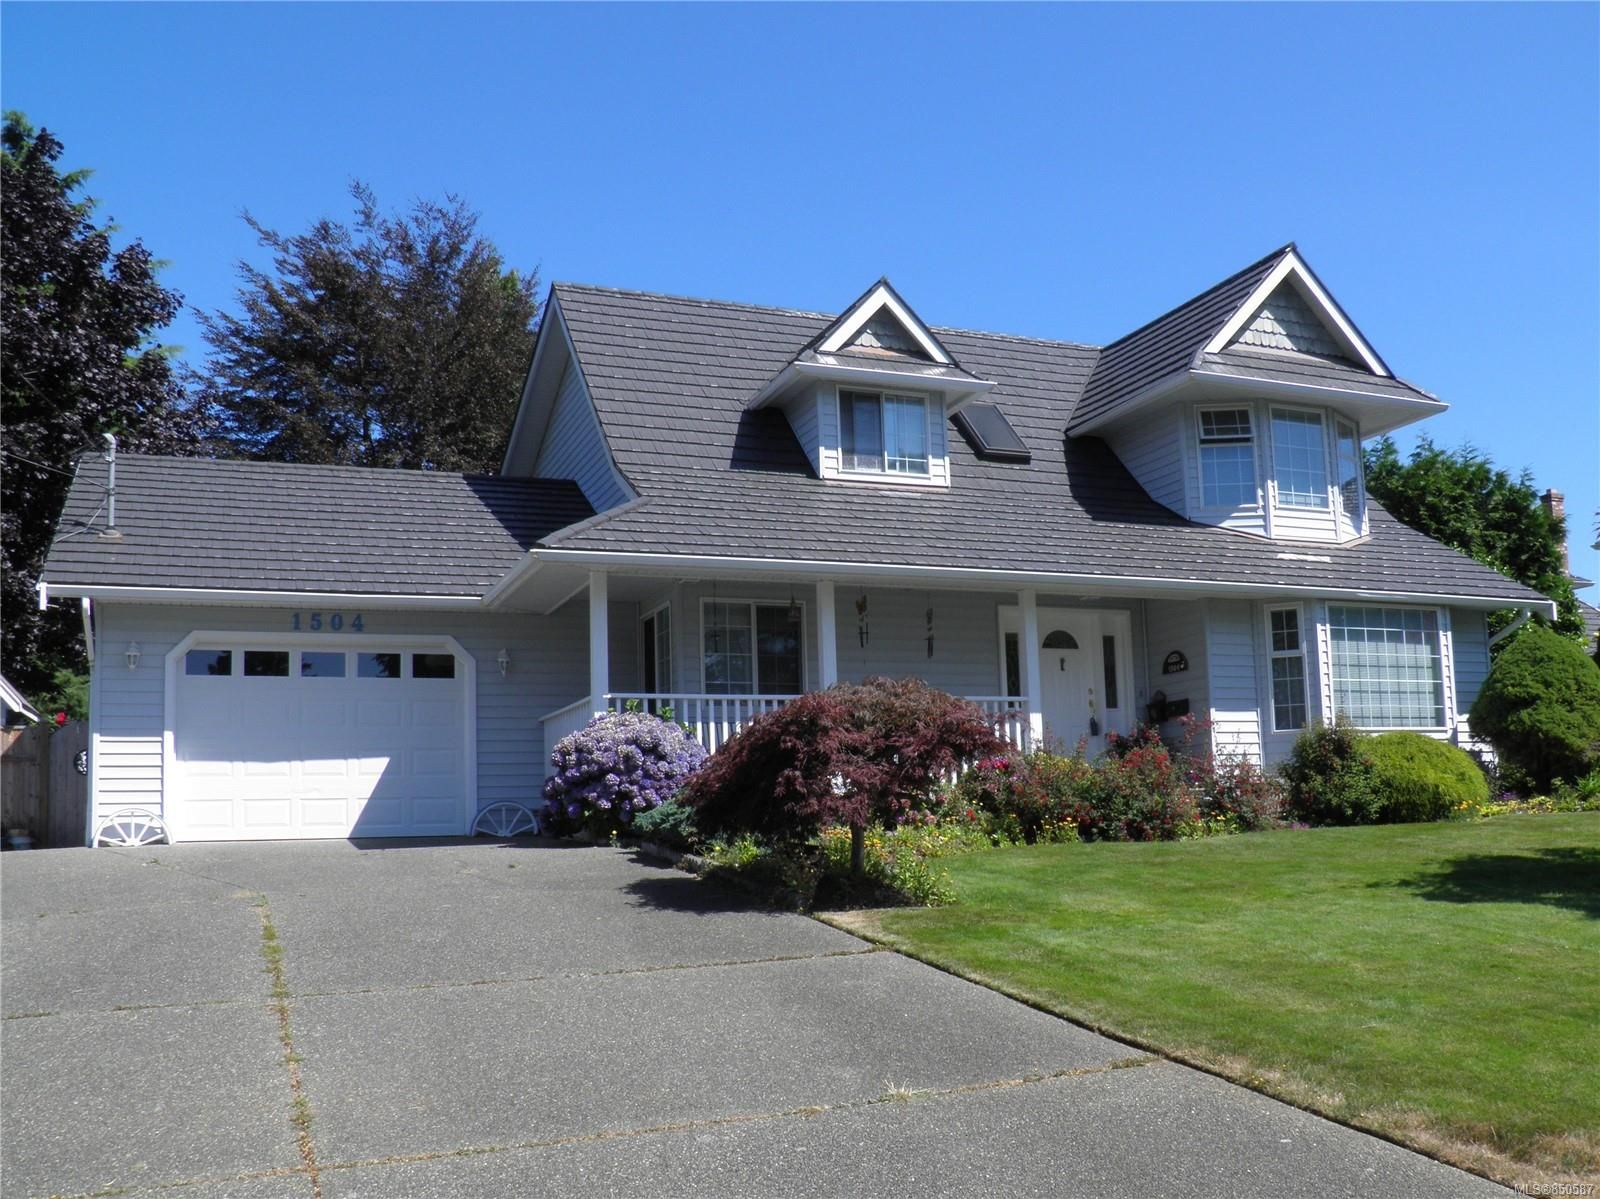 Main Photo: 1504 Comox Ave in : CV Comox (Town of) House for sale (Comox Valley)  : MLS®# 850587